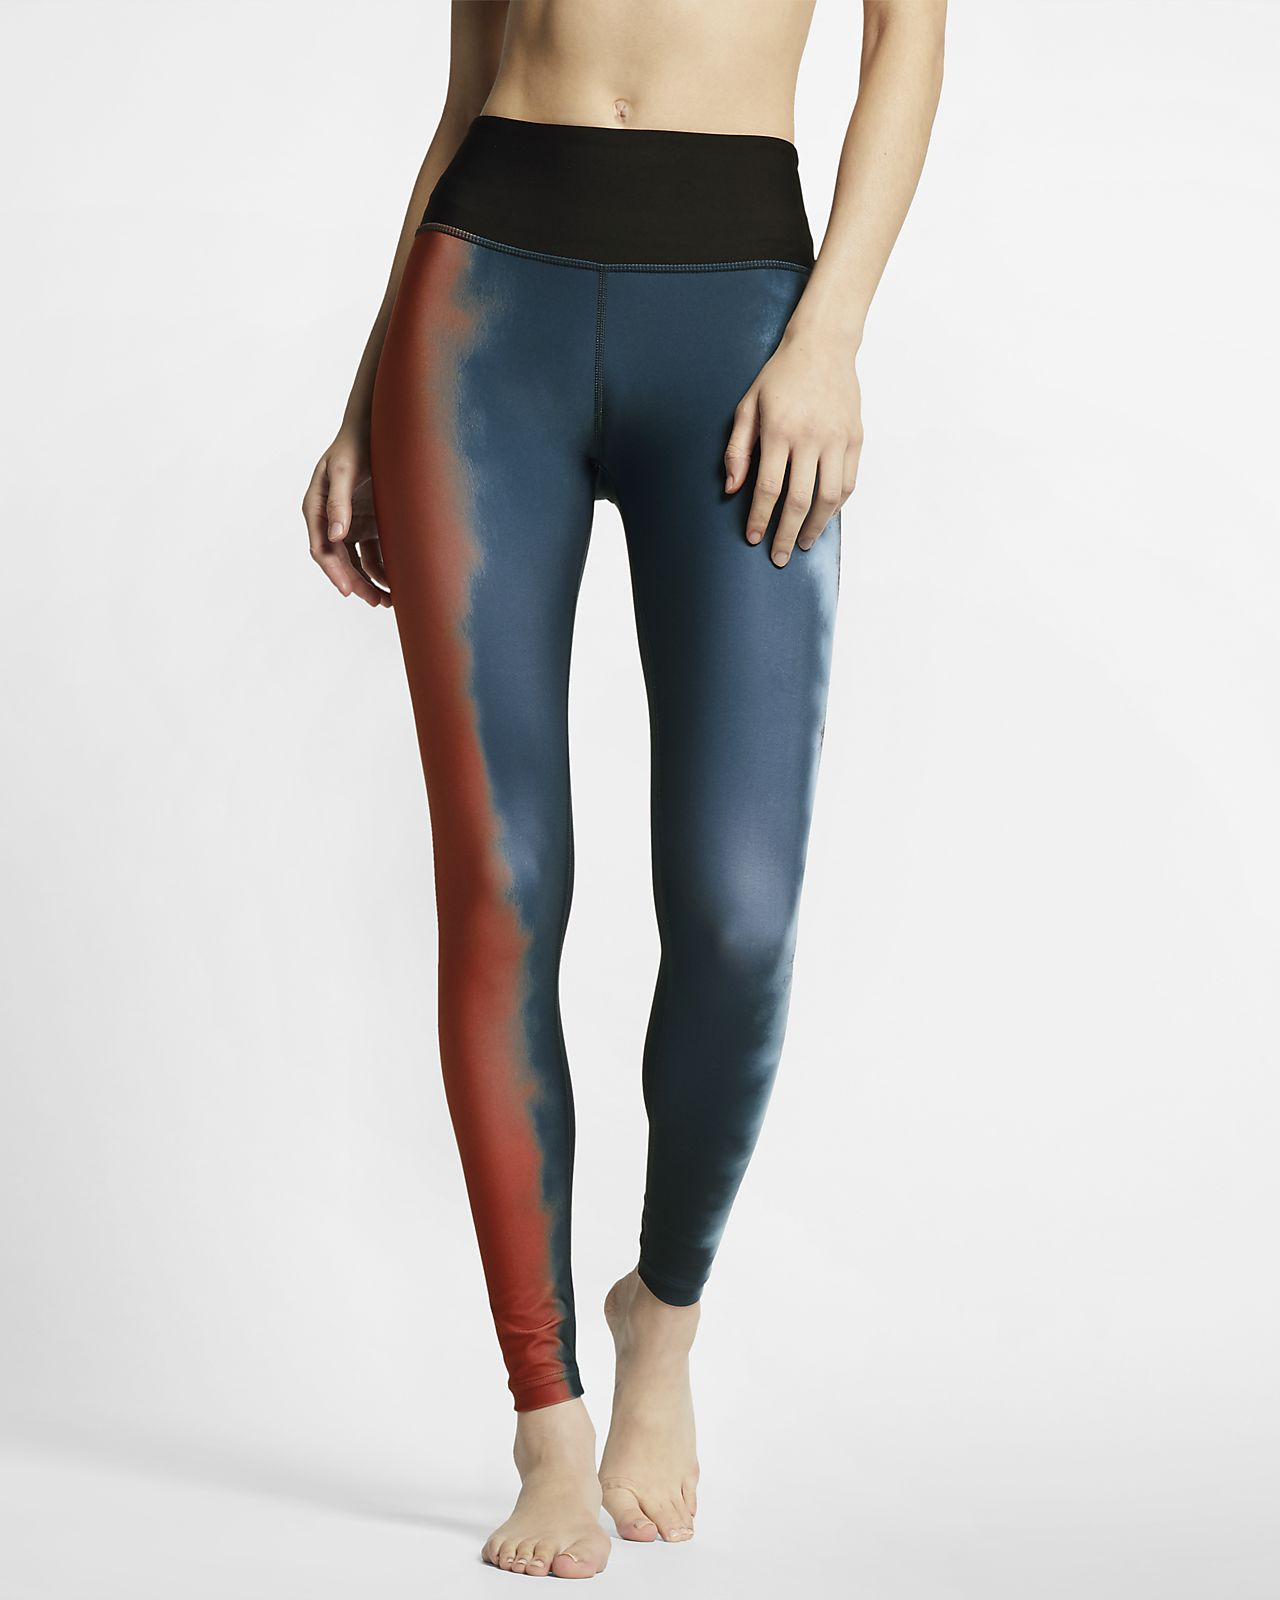 9db9eeb5ba Hurley Quick Dry Gradient Women's Surf Leggings. Nike.com